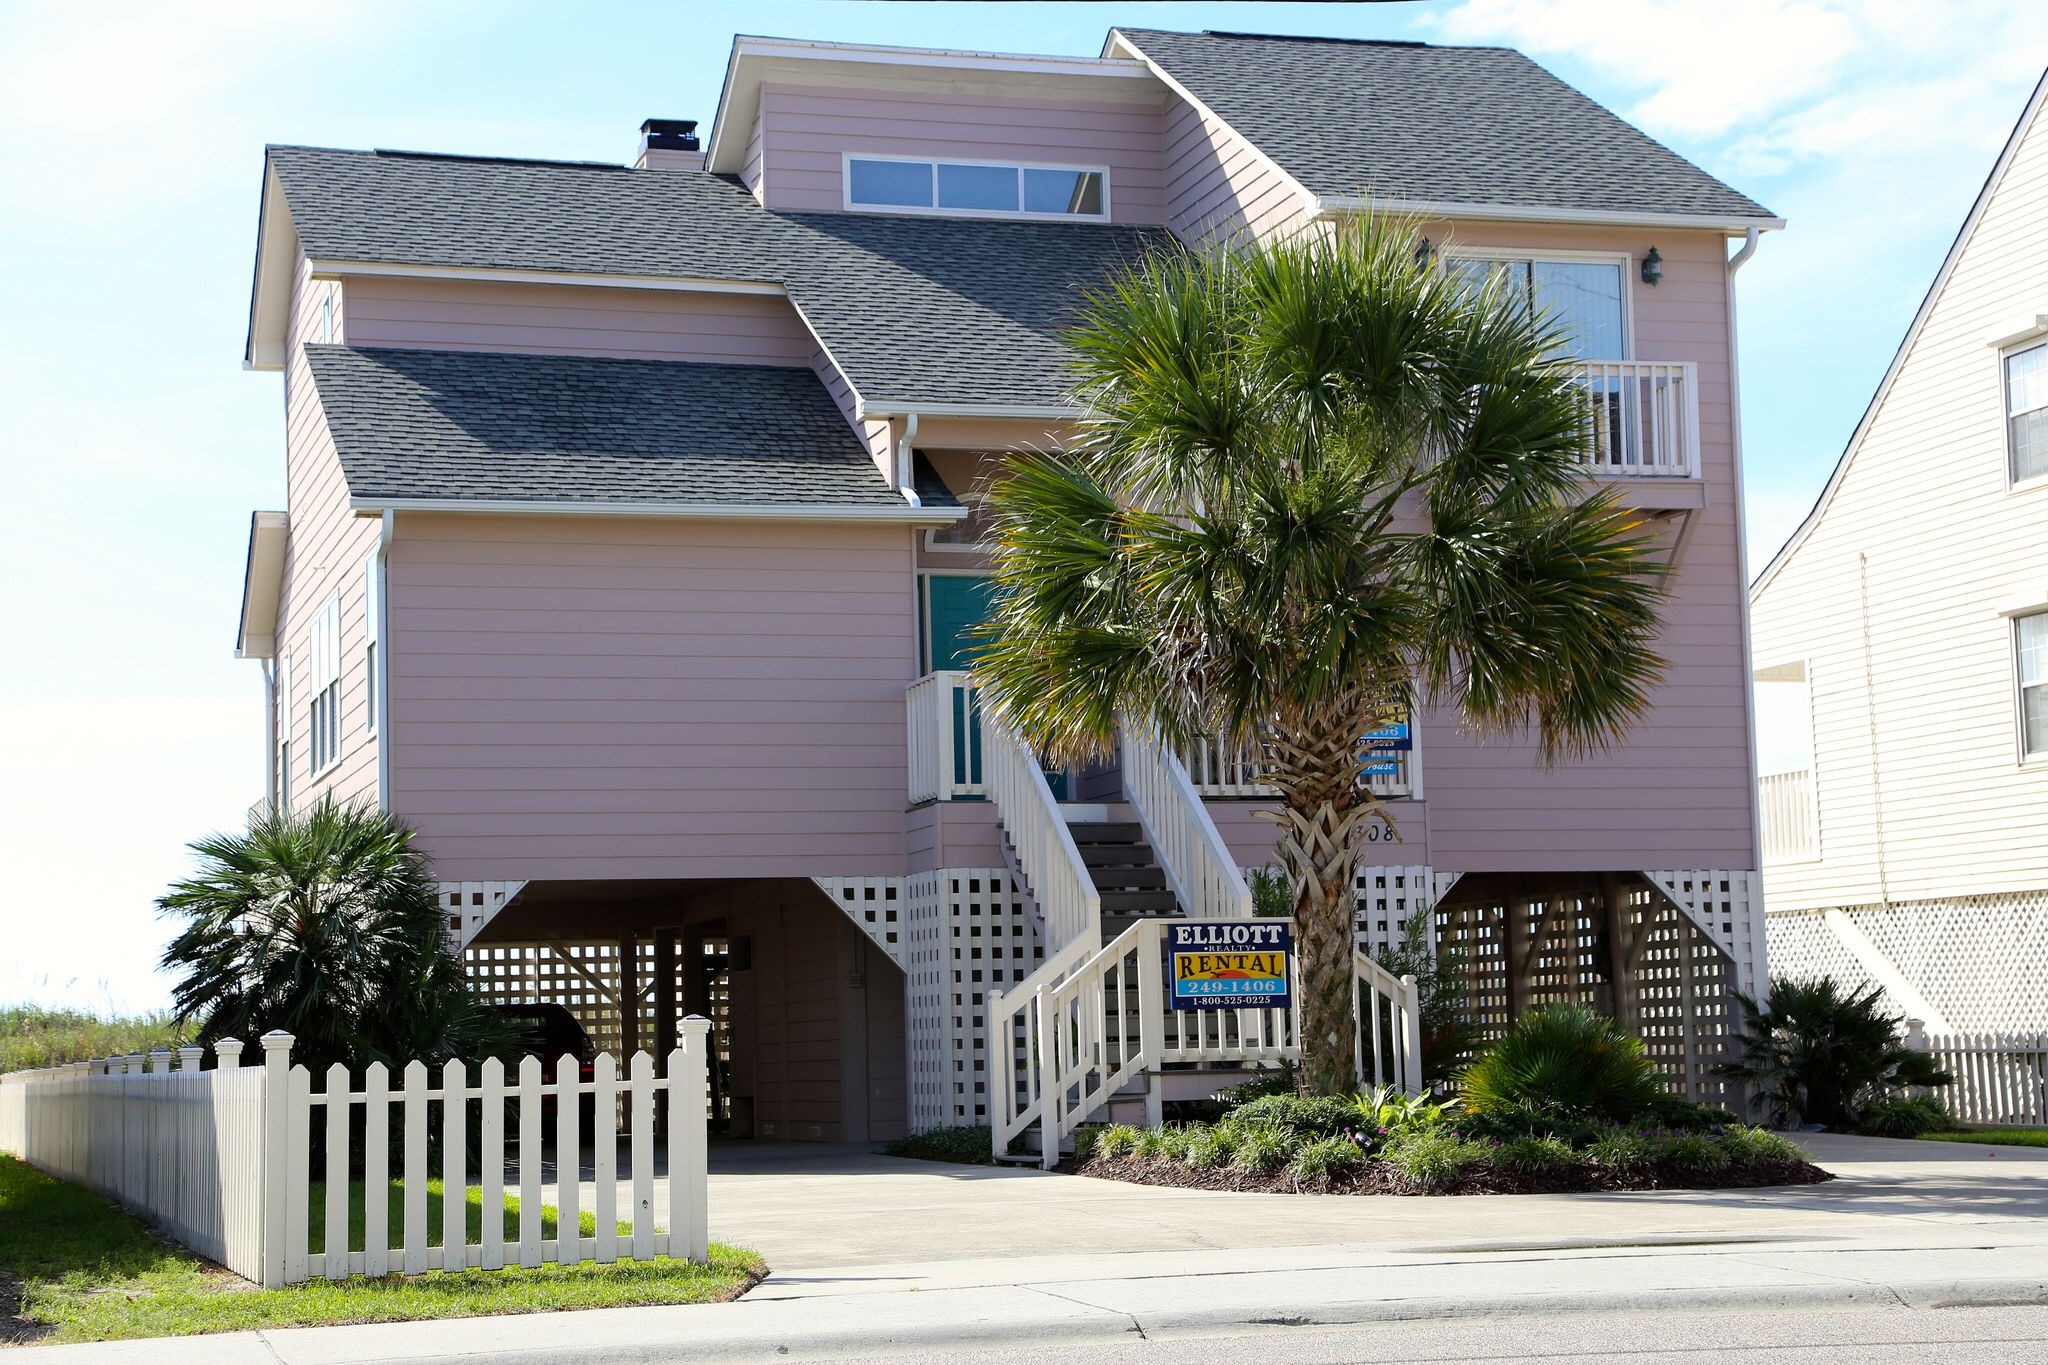 BRITT HOUSE  OCEANFRONT RENTAL  4 BEDROOMS 4 FULL BATHS